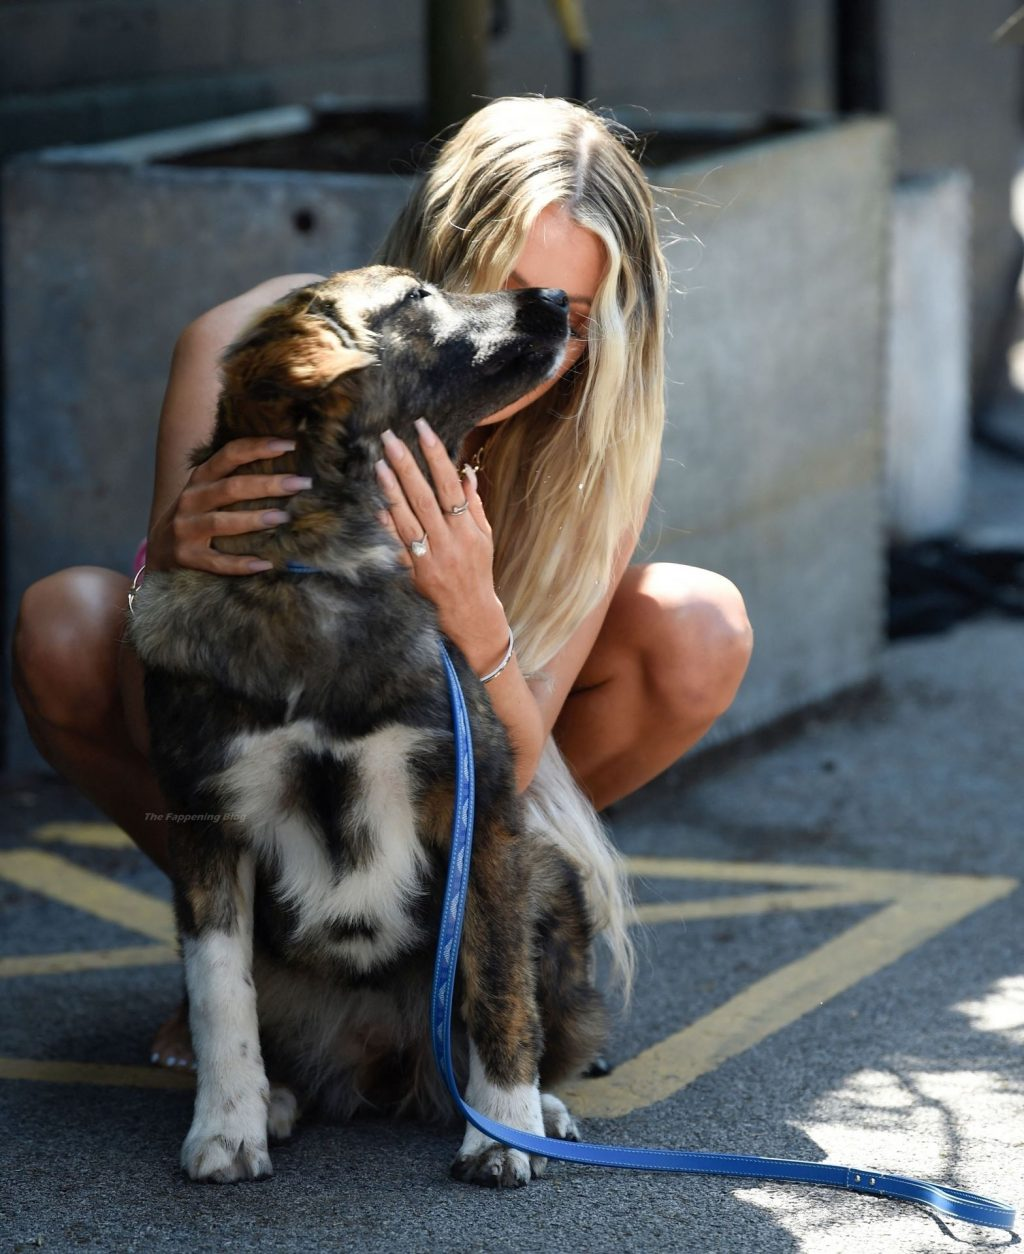 Olivia Attwood Poses with Her Dog at a Photoshoot in Manchester (53 Photos)